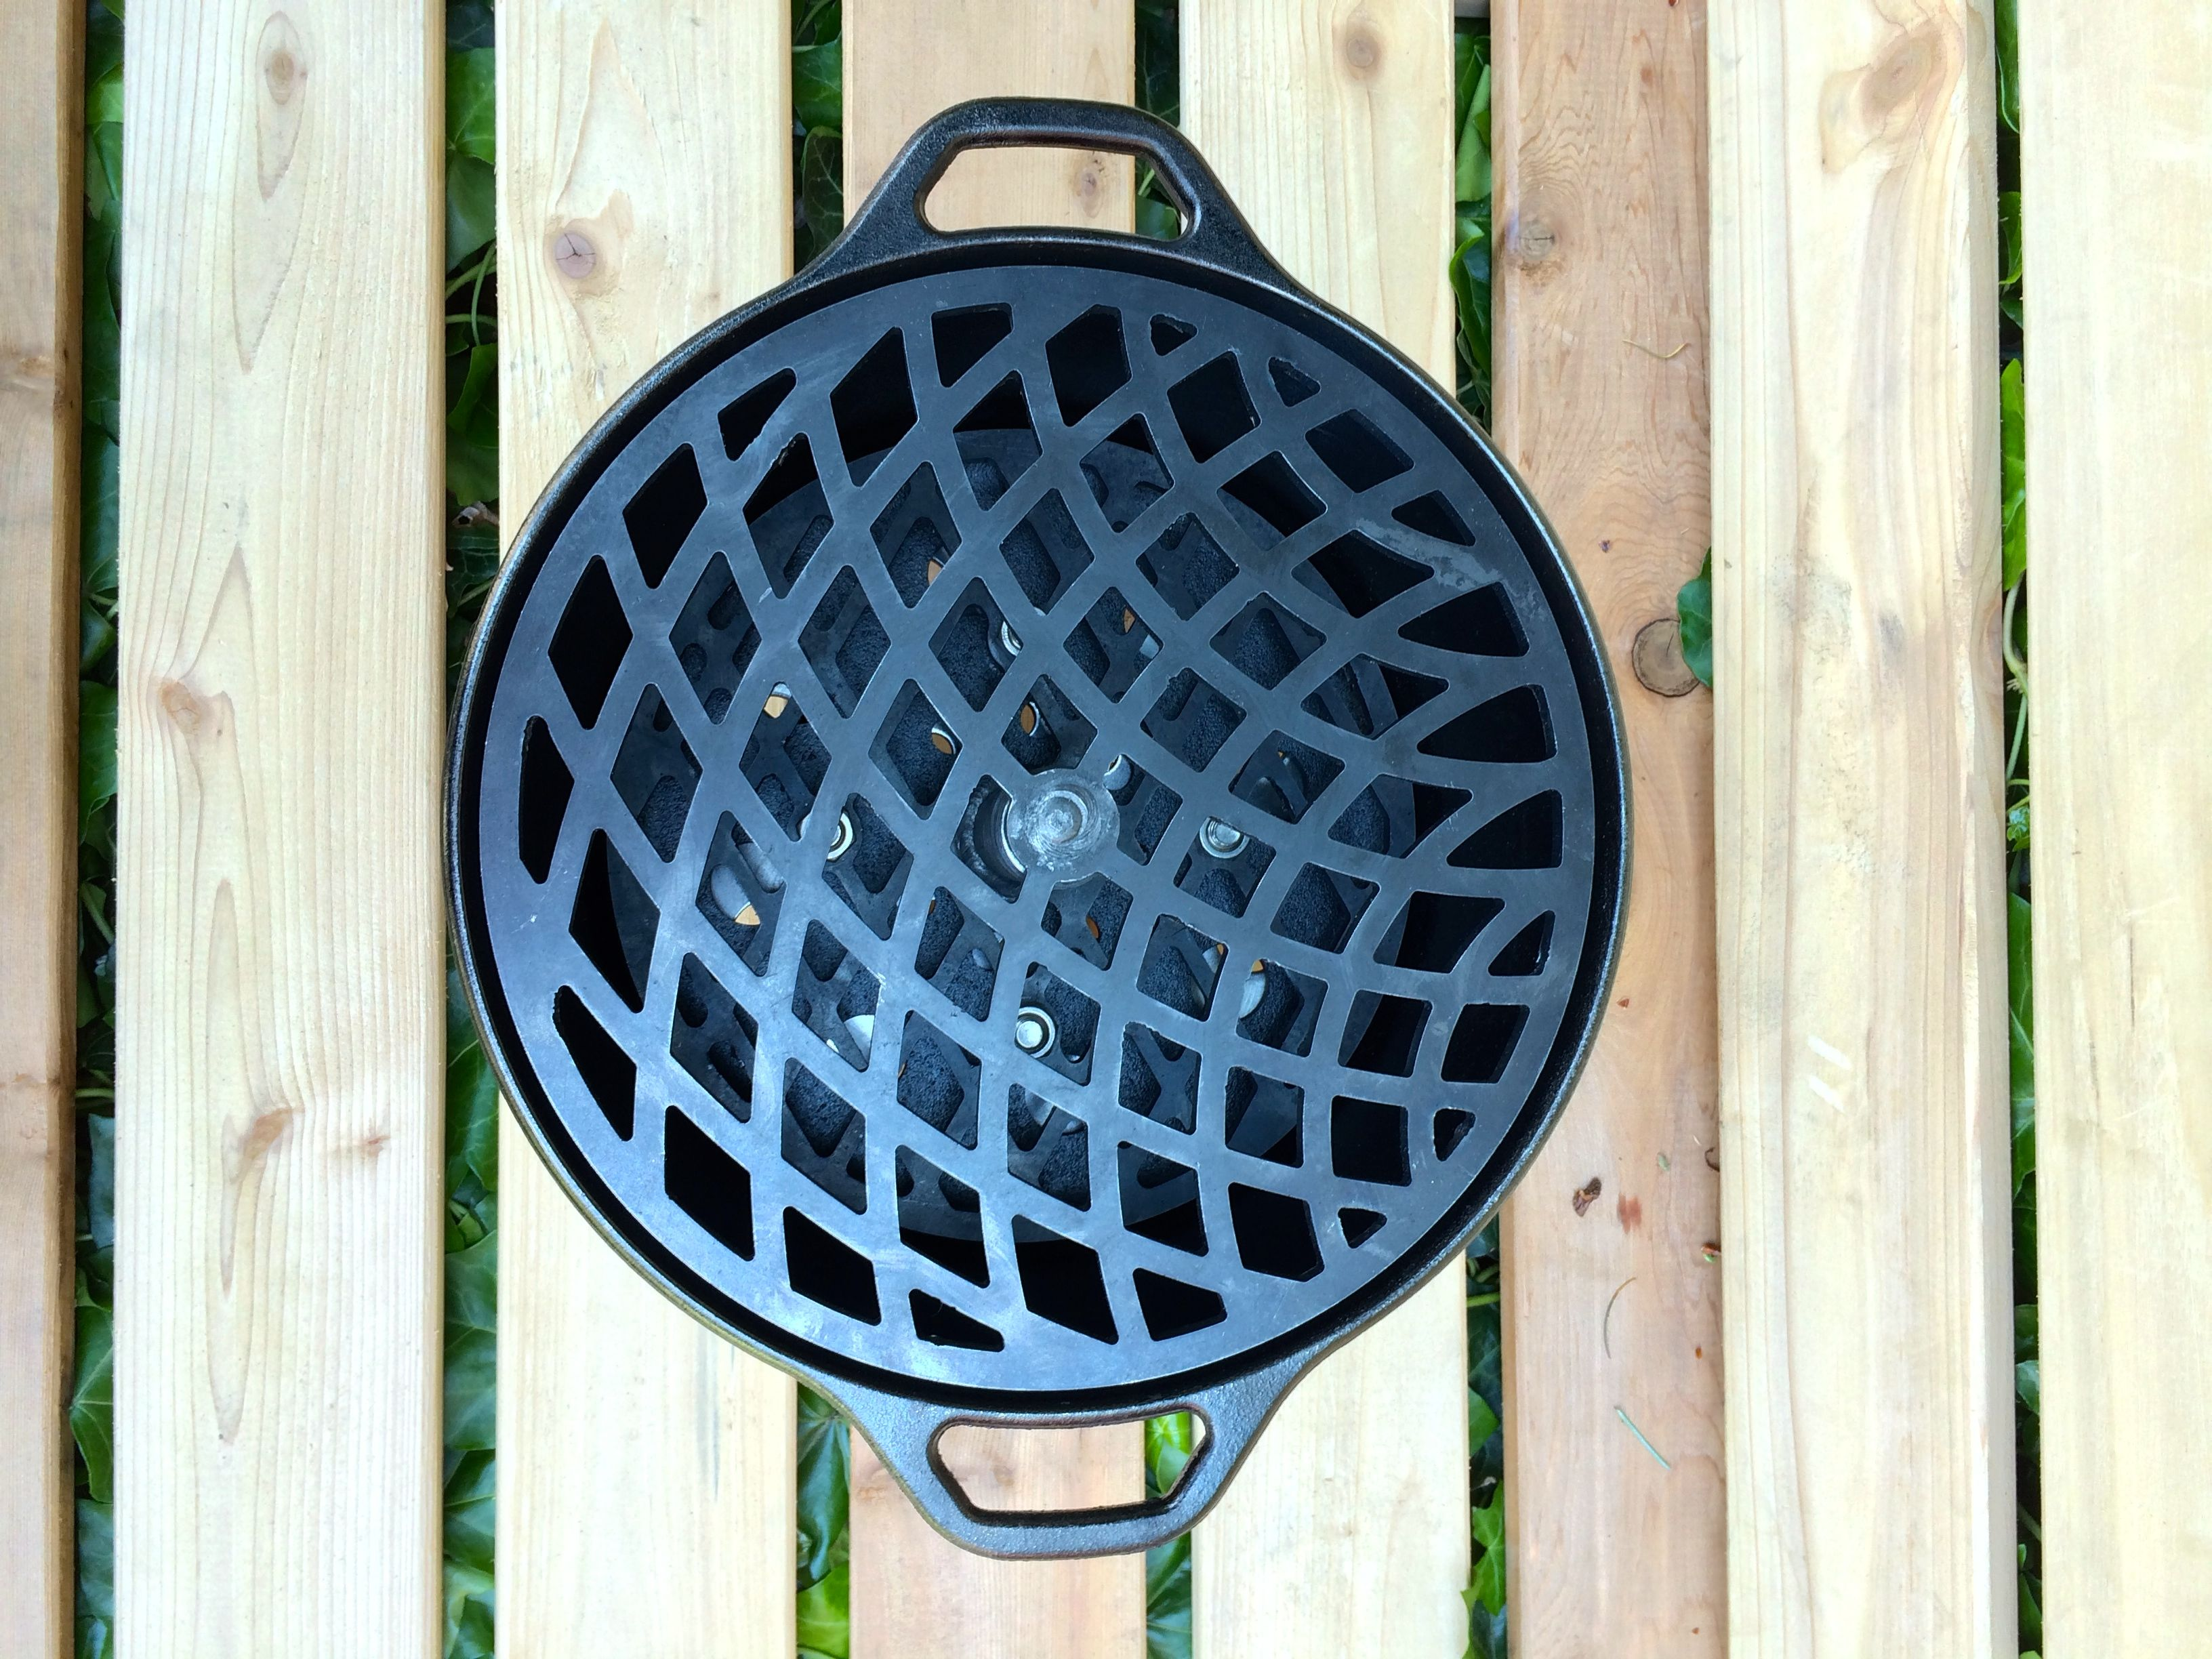 Https://www.etsy.com/listing/193970523/compact Cast Iron Table Top Grill?refu003dshop_home_active_1  #castiron #bbq #charcoal #hibachi #tabletop | Pinterest | U2026